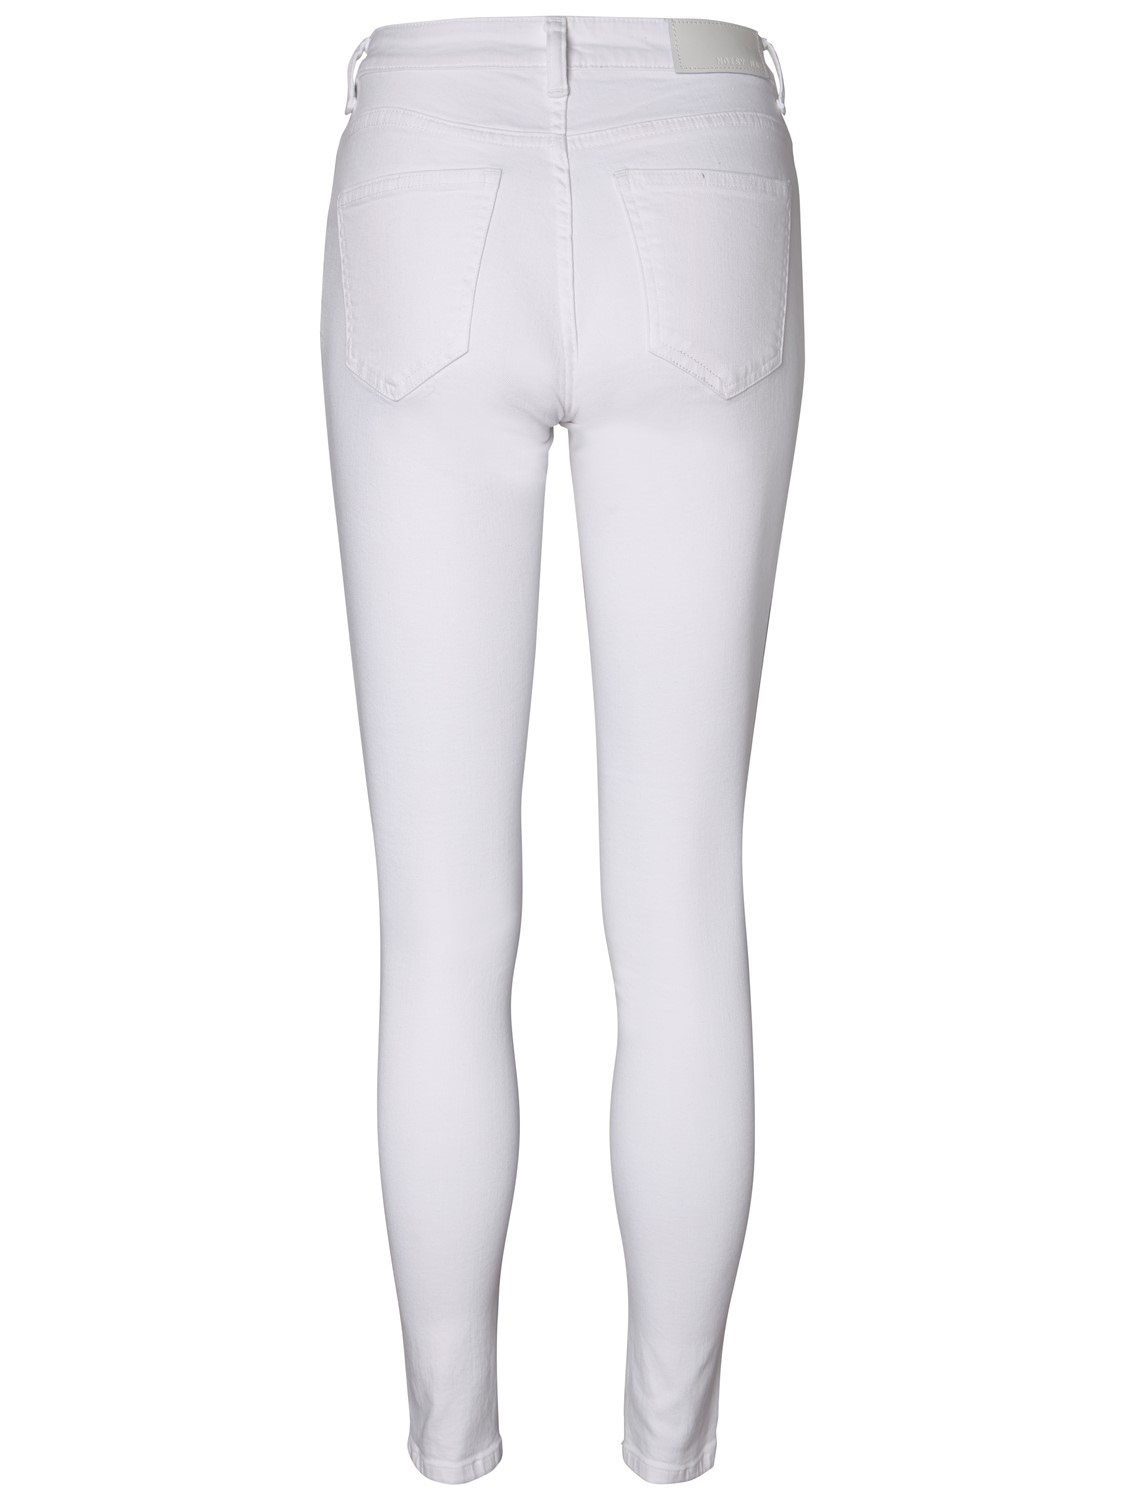 noisy-may-damen-jeans-nmeve-lw-pckt-piping-white-jeans-slim-fit-wei-bright-white